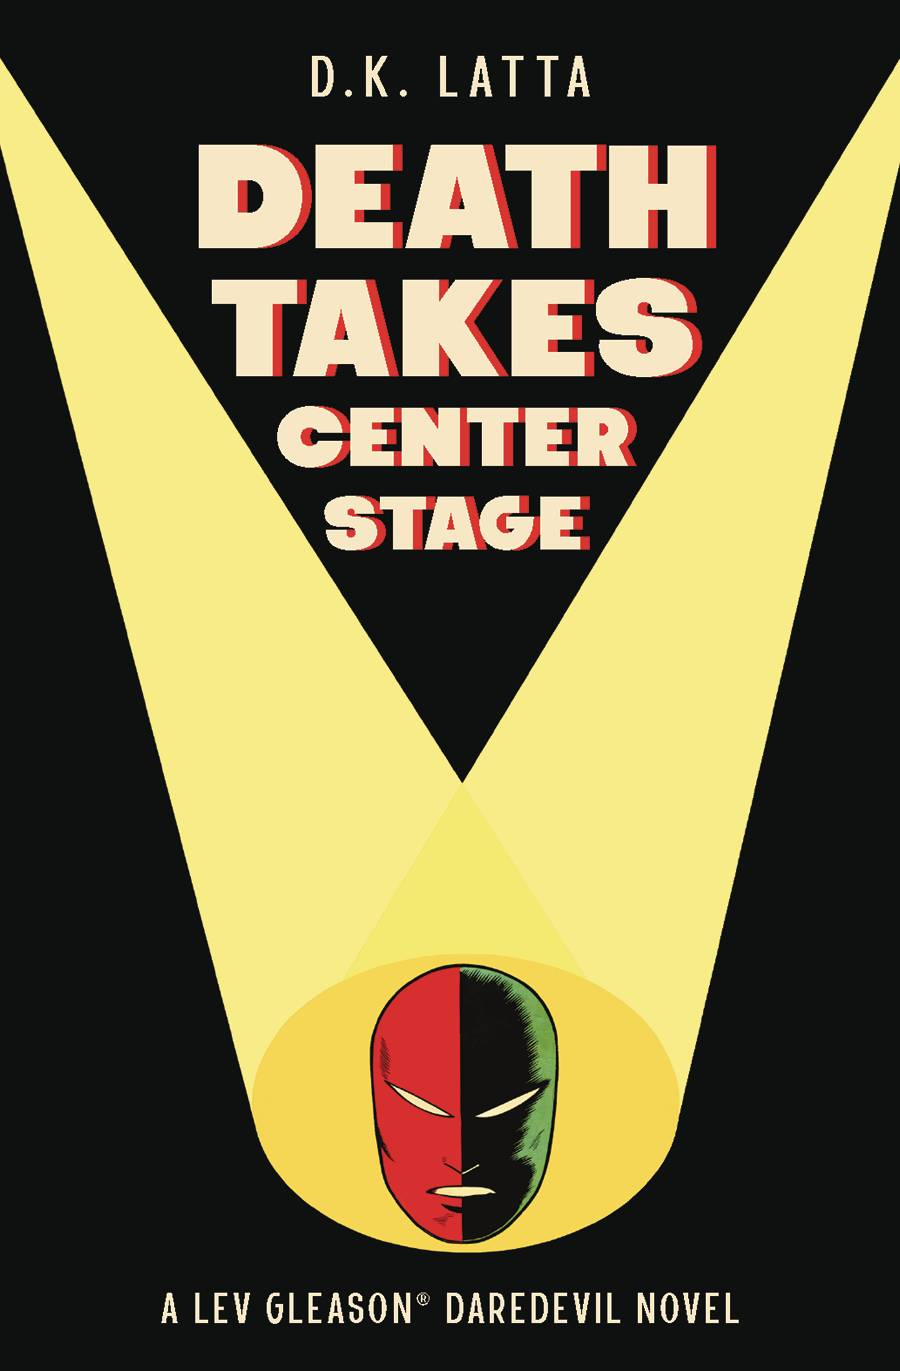 DEATH TAKES CENTER STAGE PAPERBACK